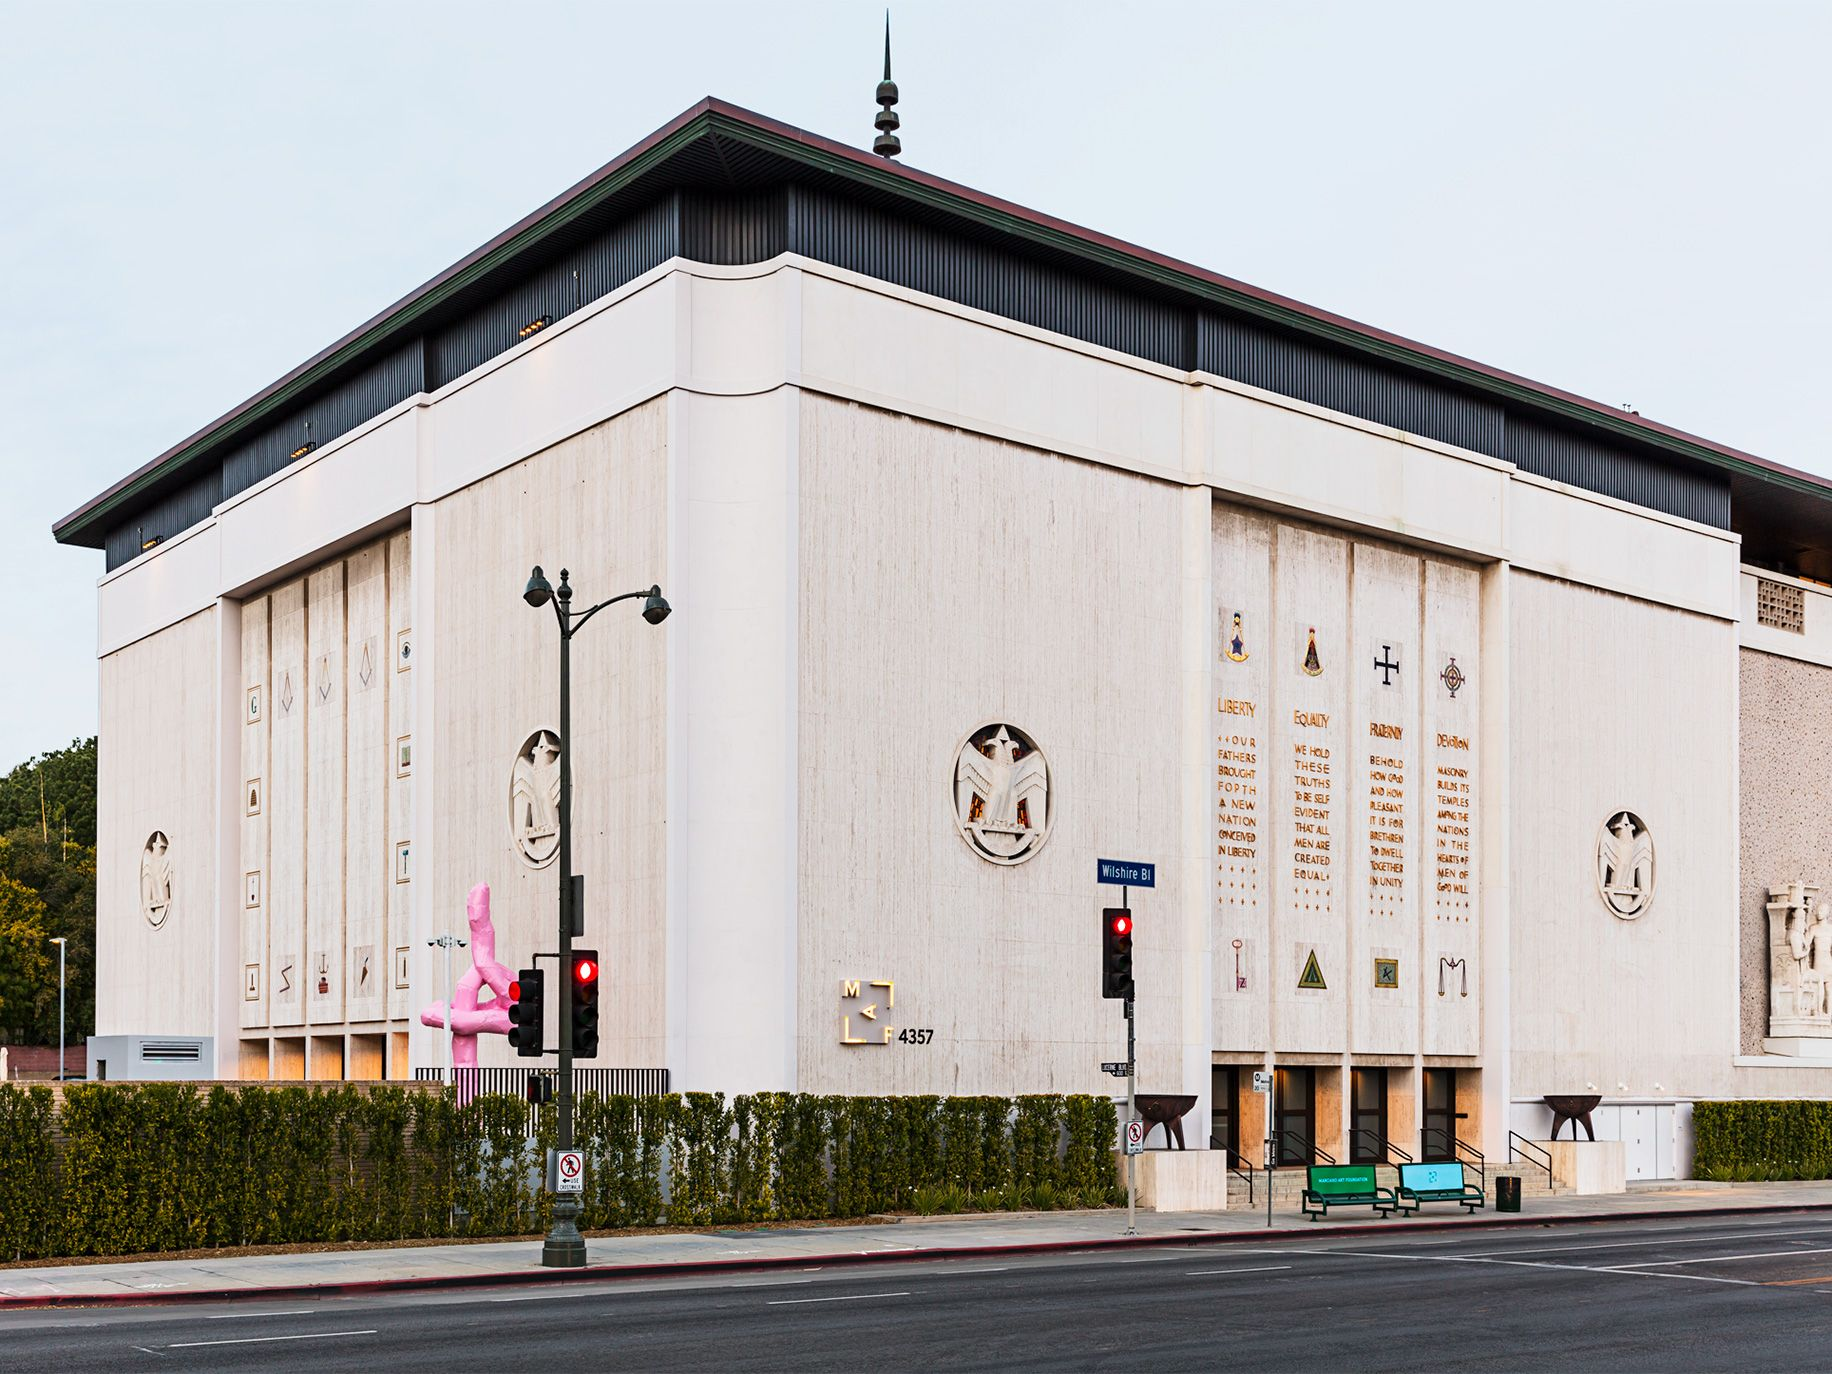 The Marciano Art Foundation transformed a former Scottish Rite Masonic Temple on L.A.'s busy Wilshire Boulevard into a cutting-edge museum.